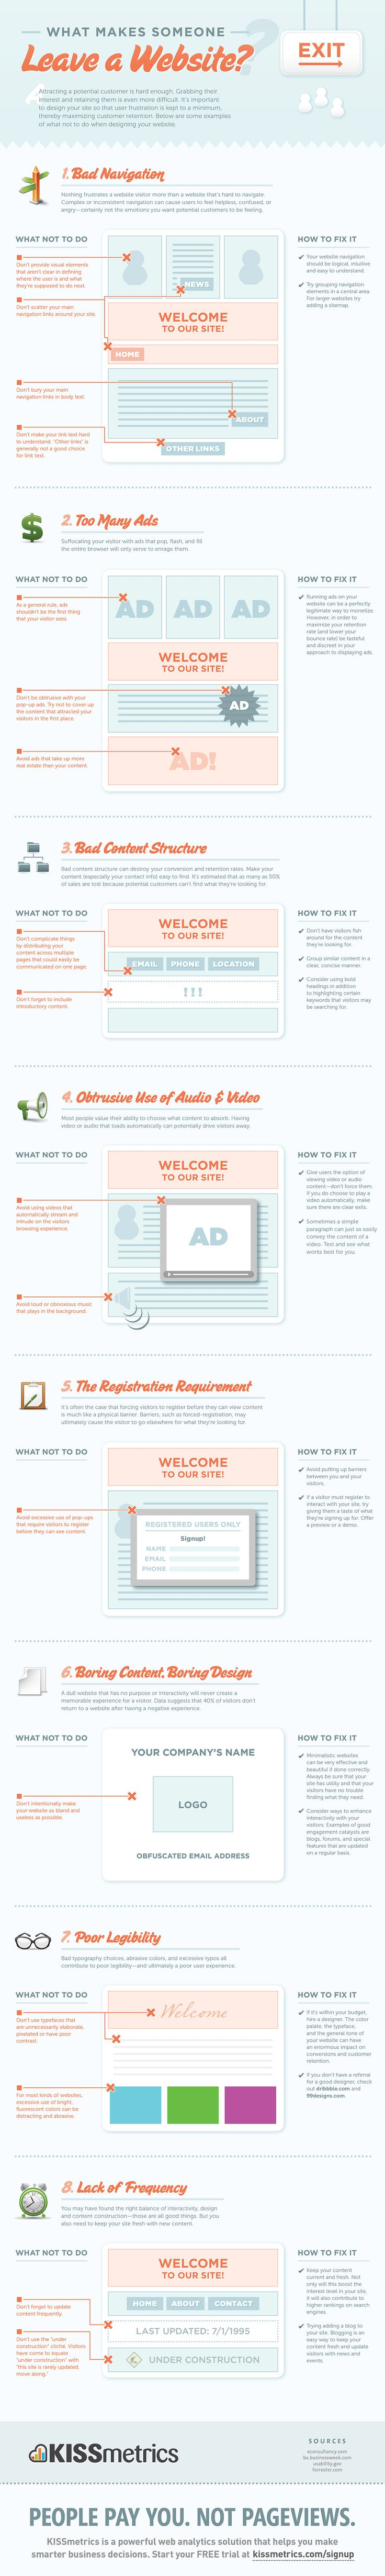 Web design infographic